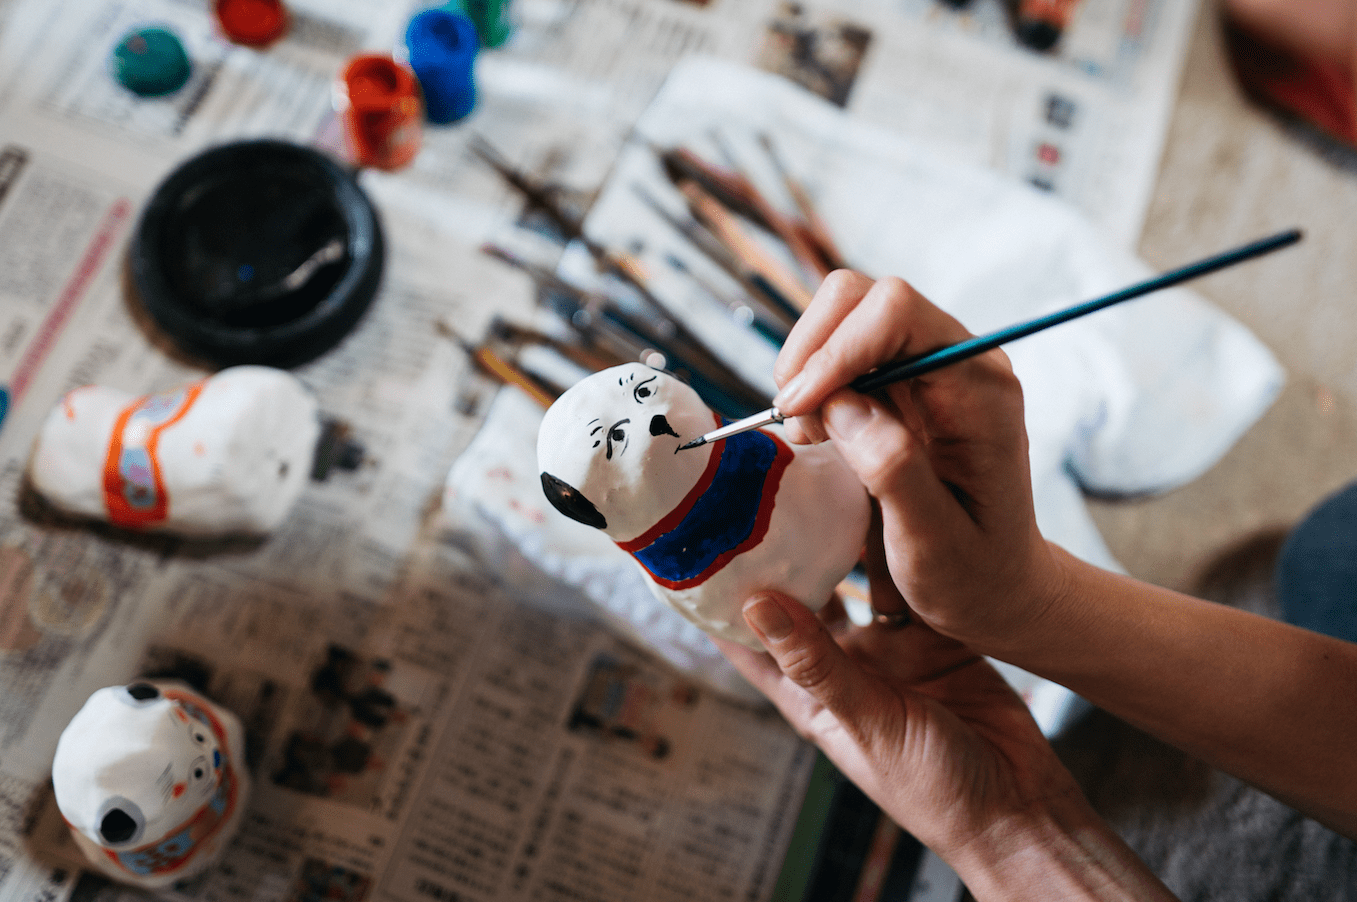 Painting a hariko doll